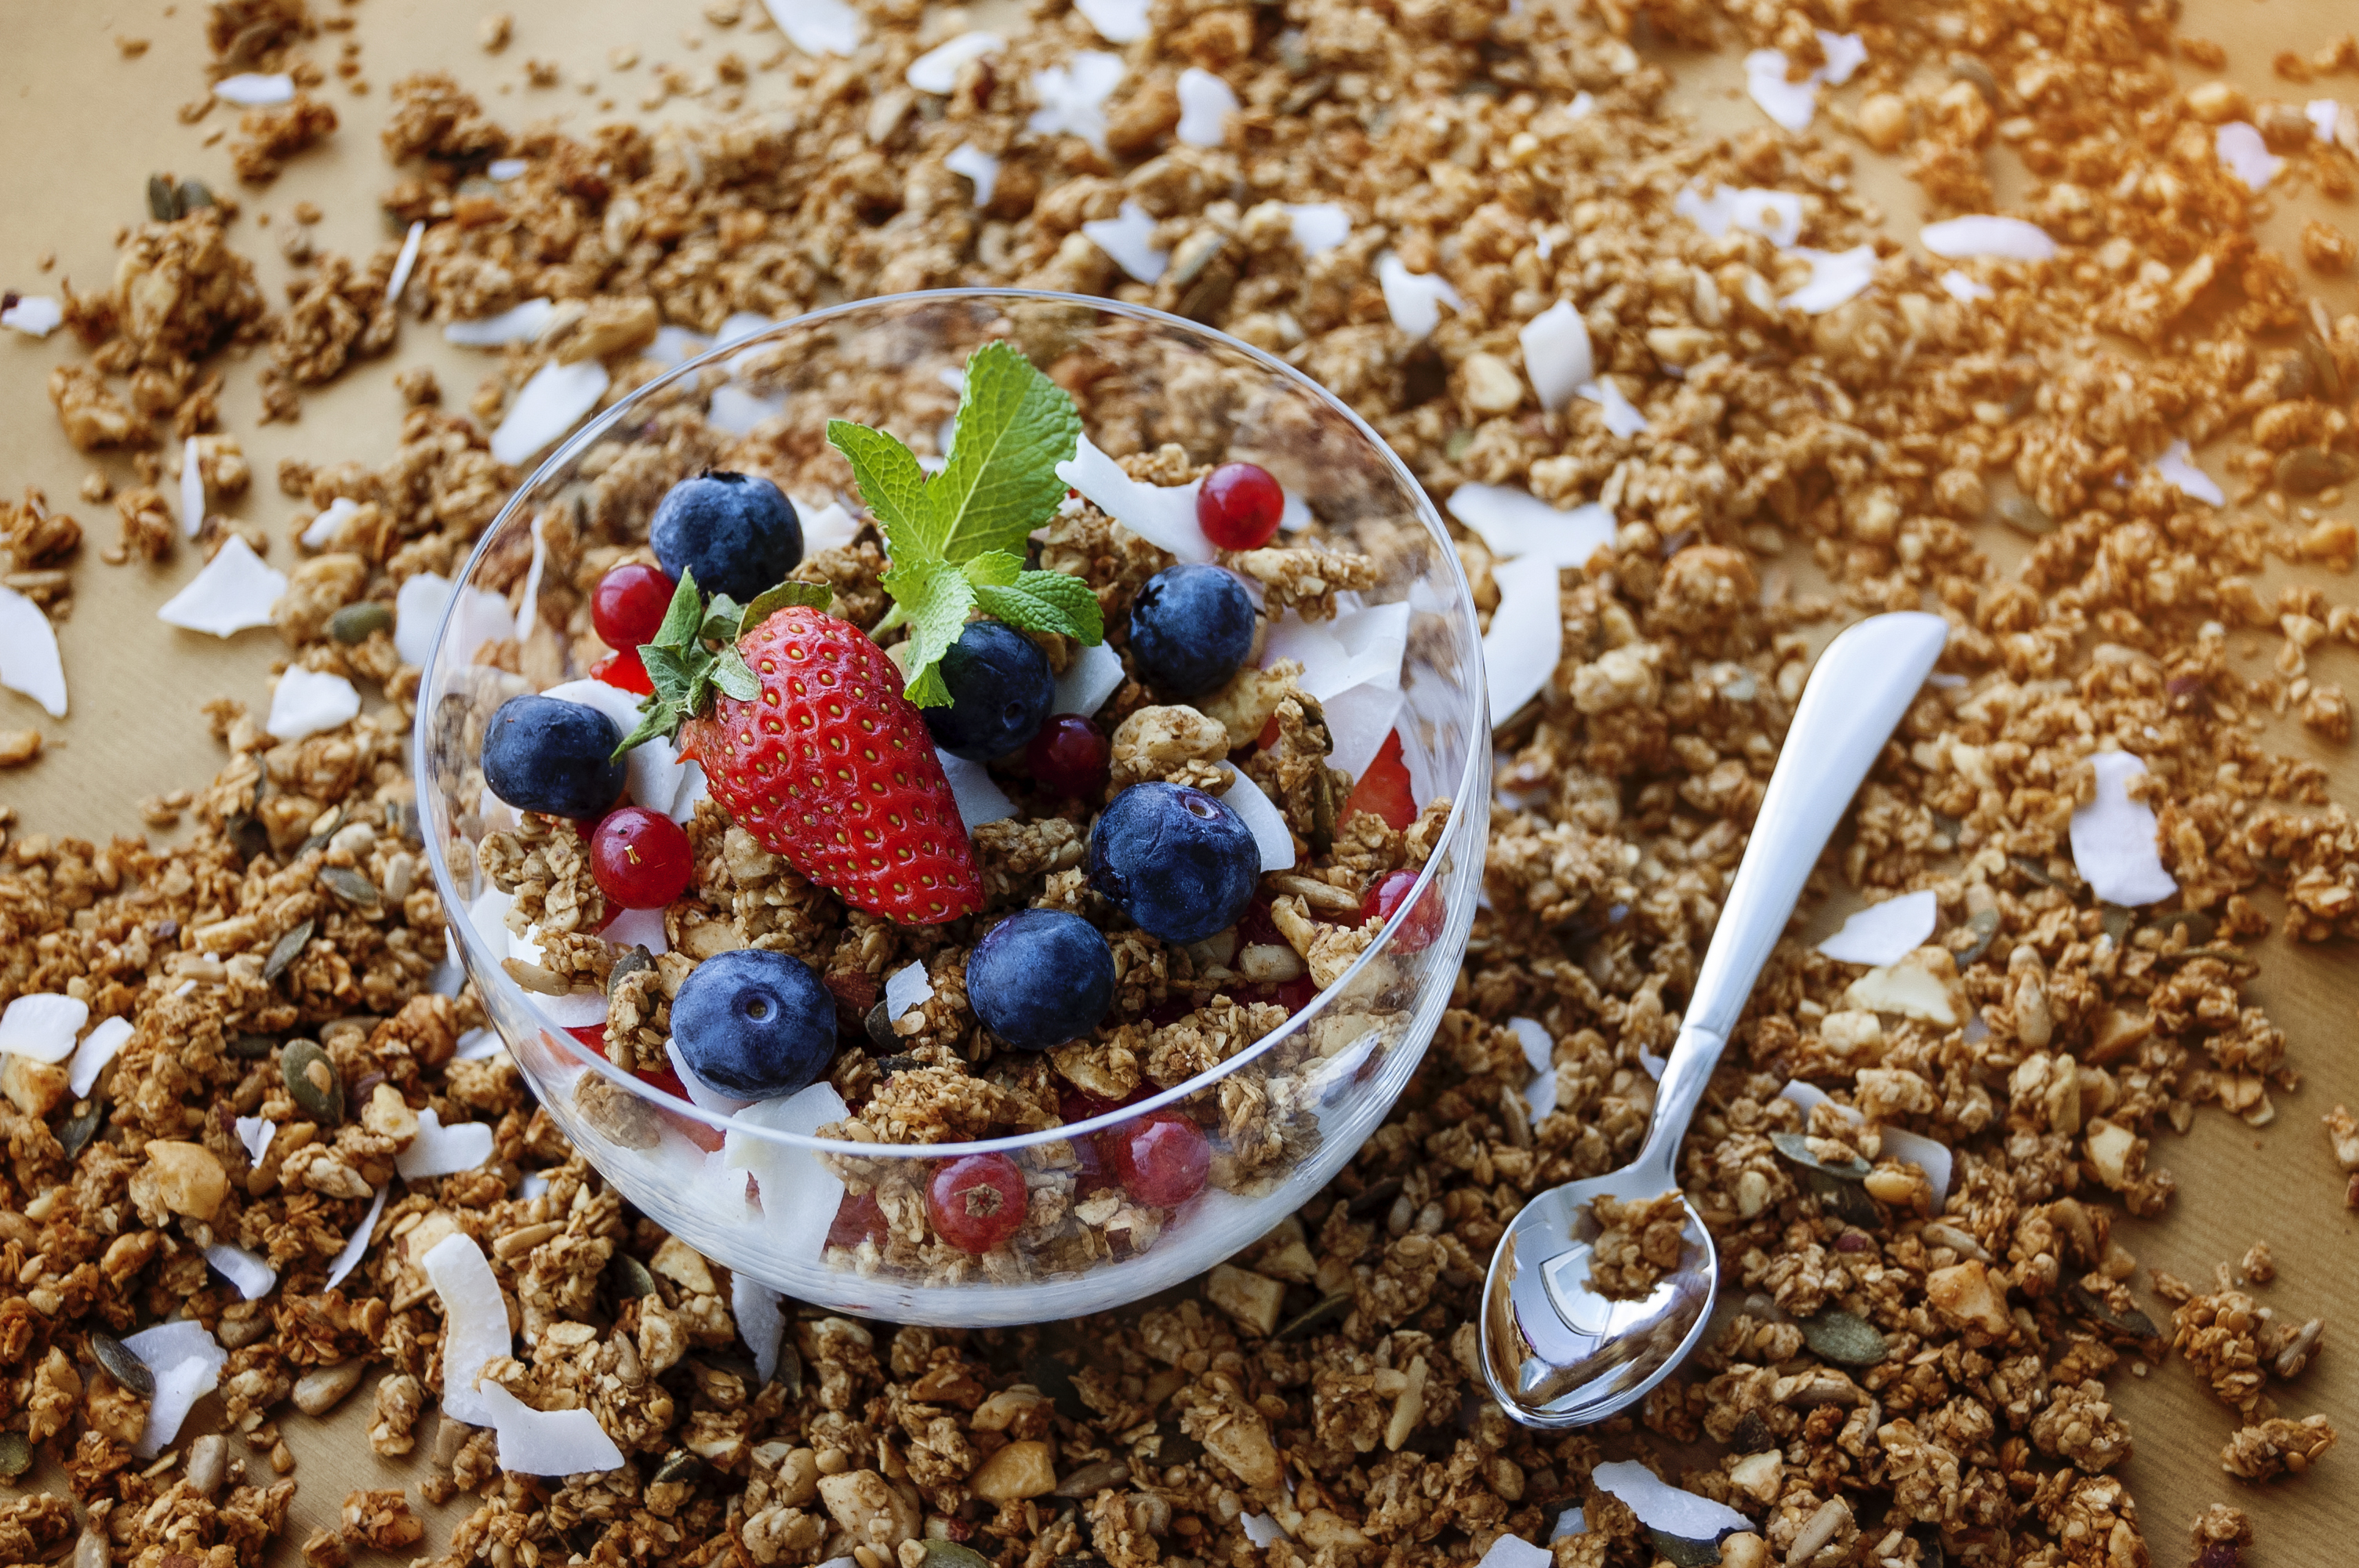 Healthy Breakfast Ideas to Lose Weight